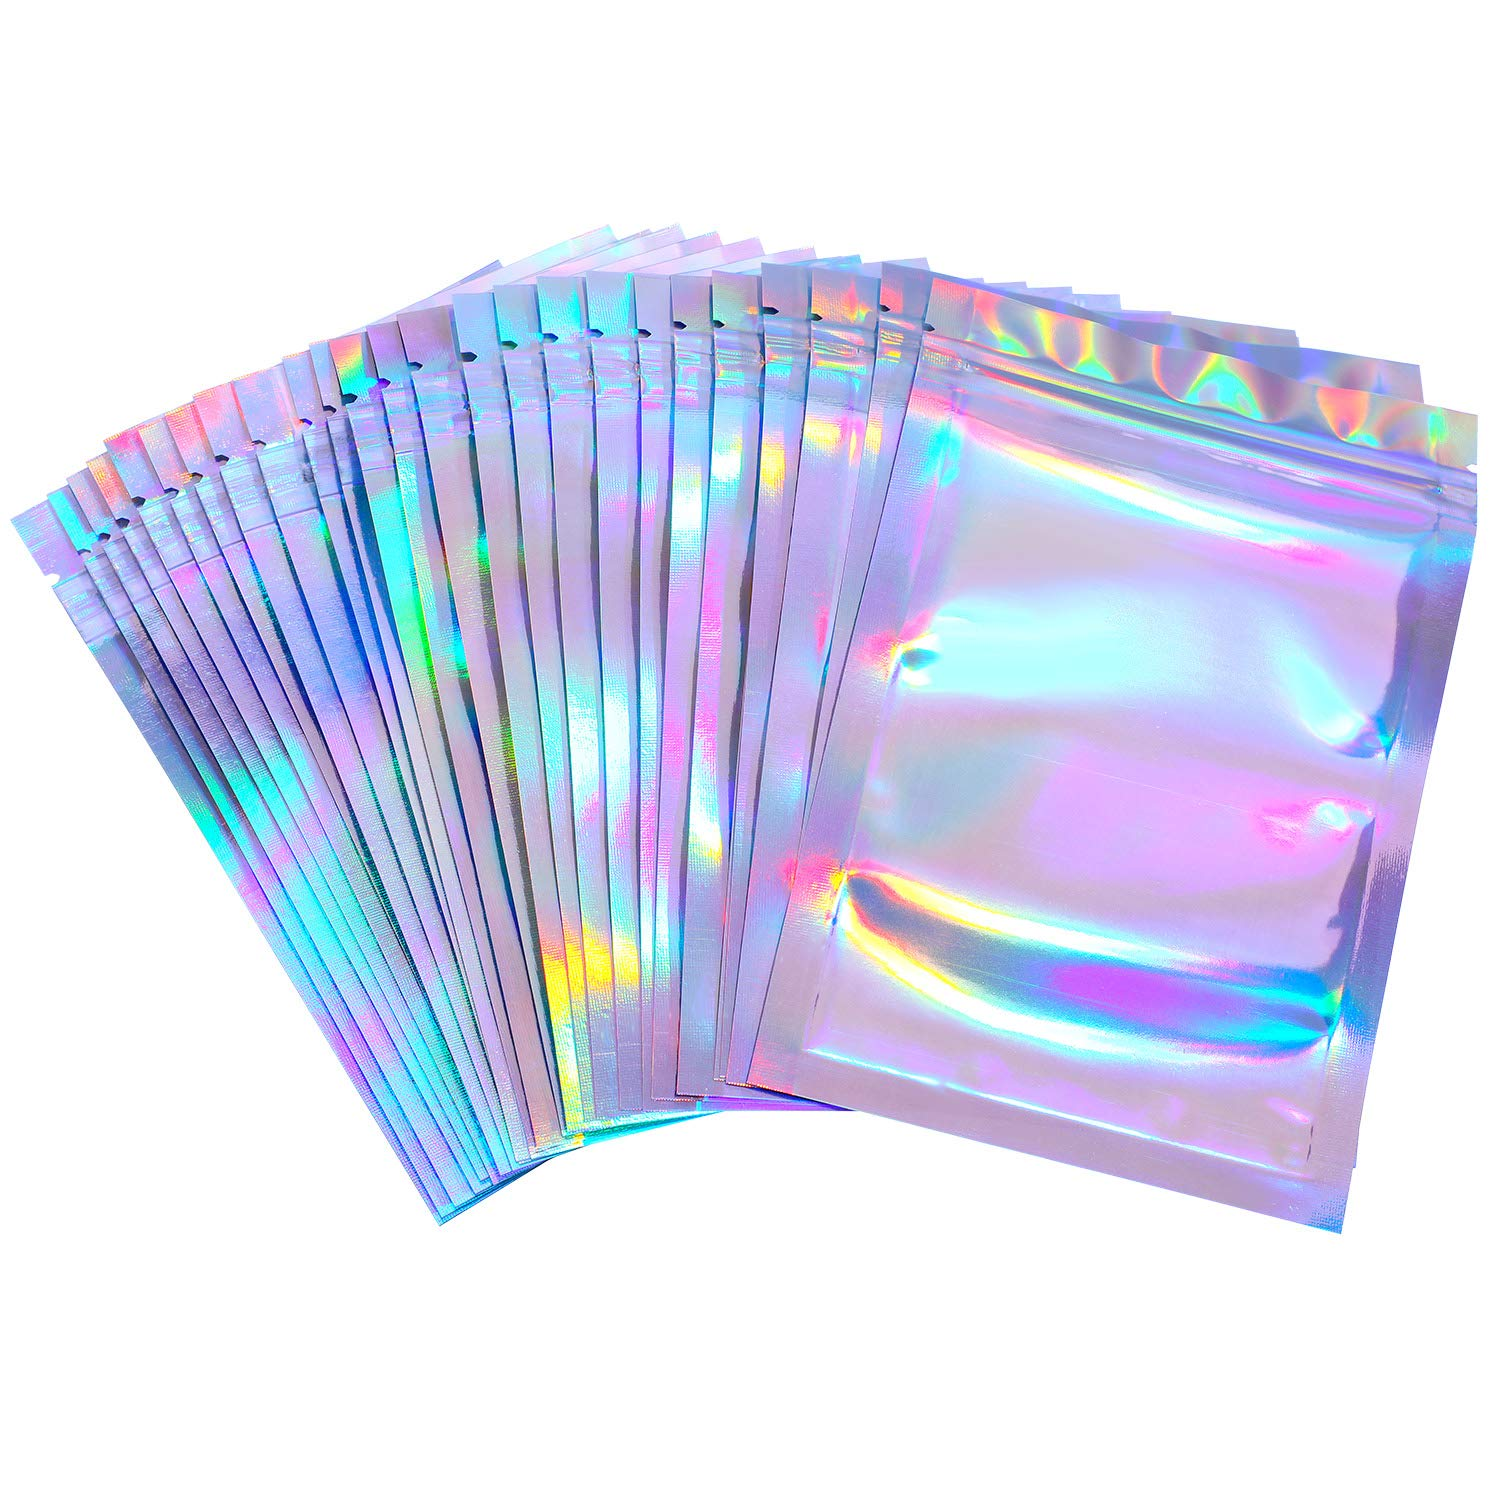 100 Pieces Resealable Smell Proof Bags Foil Pouch Bag Flat Ziplock Bag for Party Favor Food Storage, Holographic Color (5 x 7 Inches)